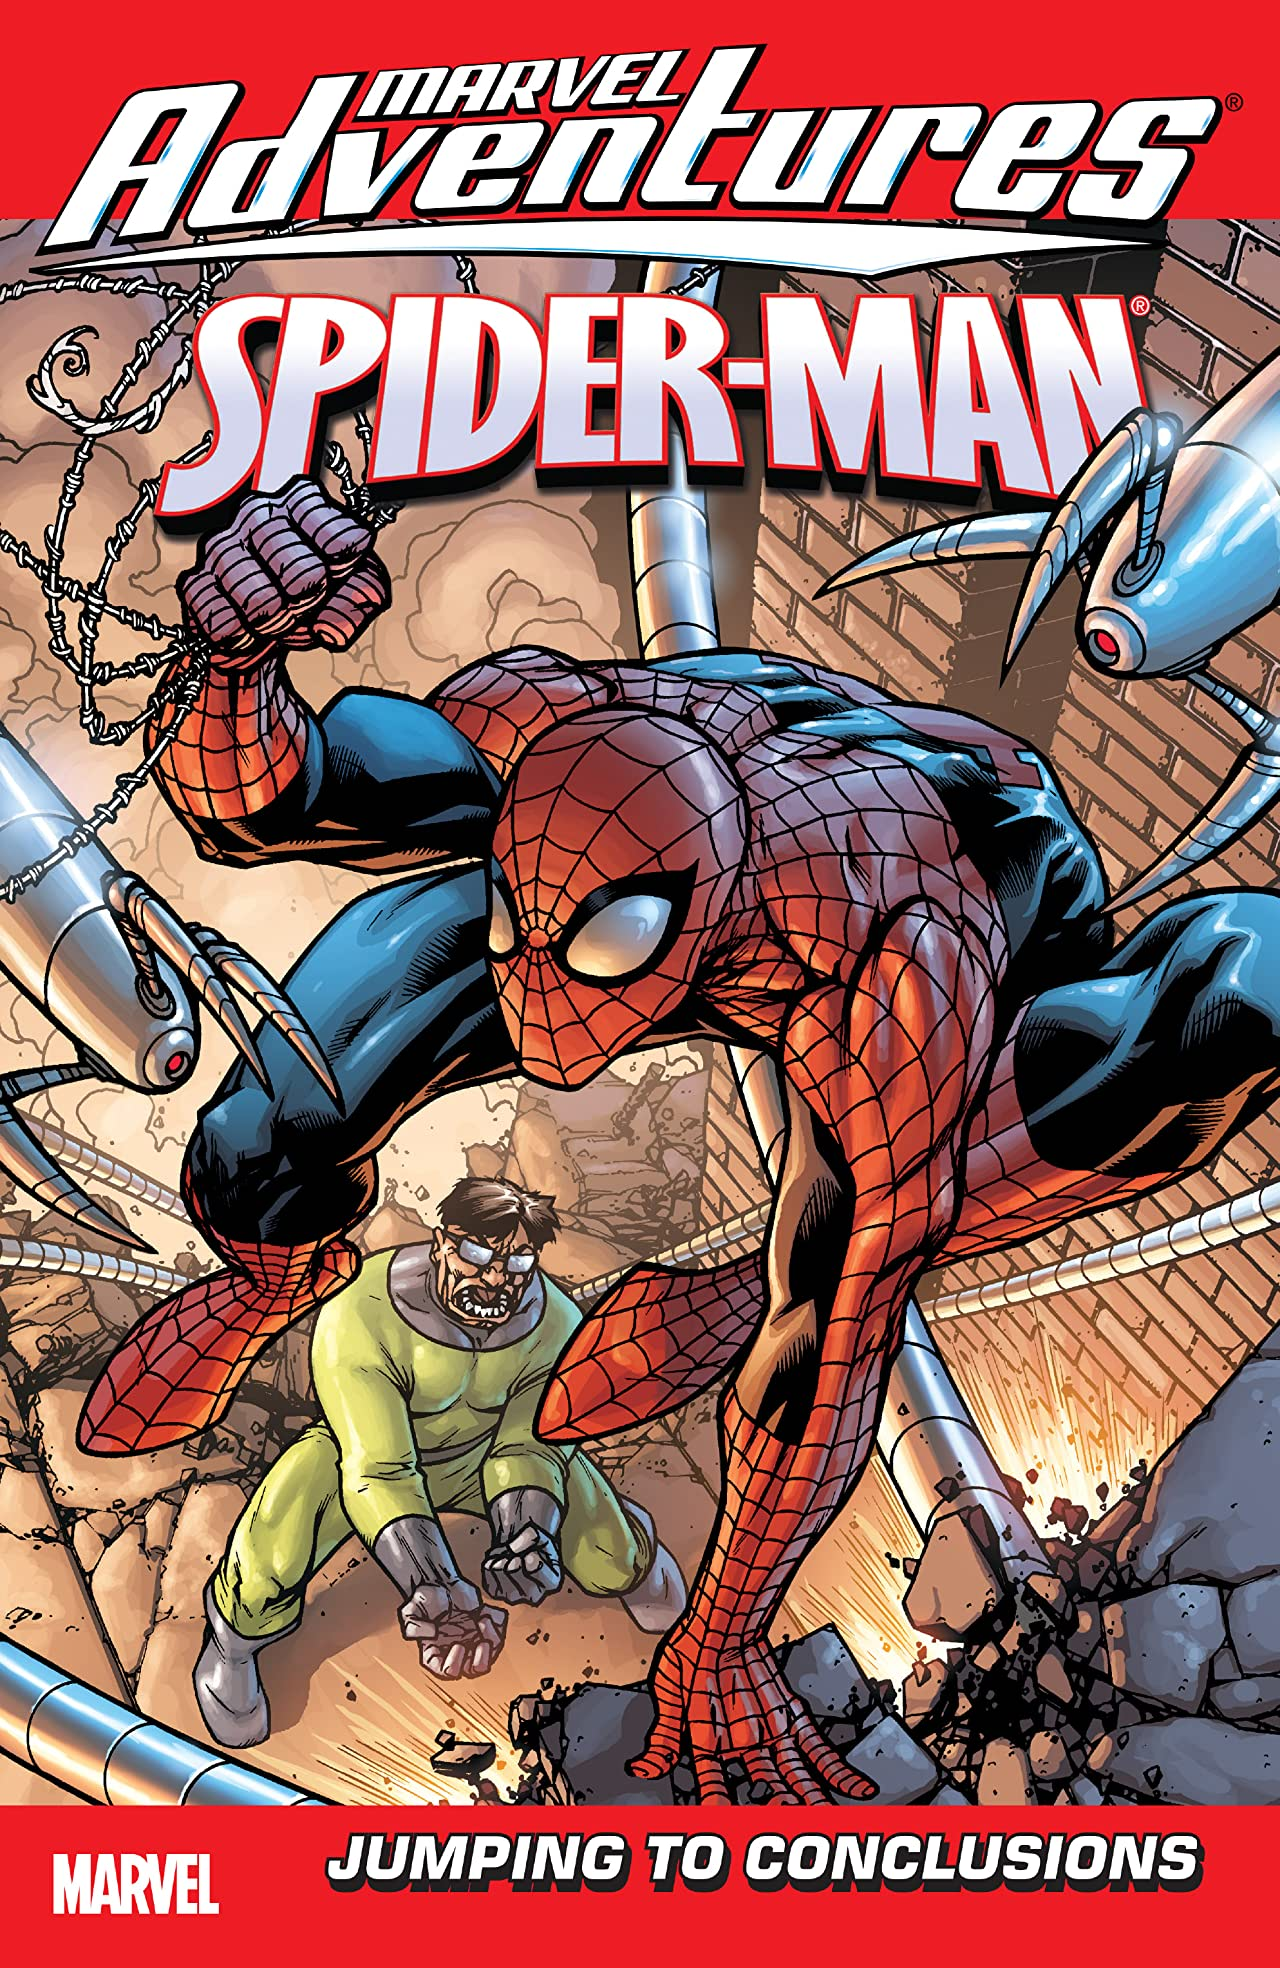 Marvel Adventures Spider-Man Vol. 12: Jumping To Conclusions